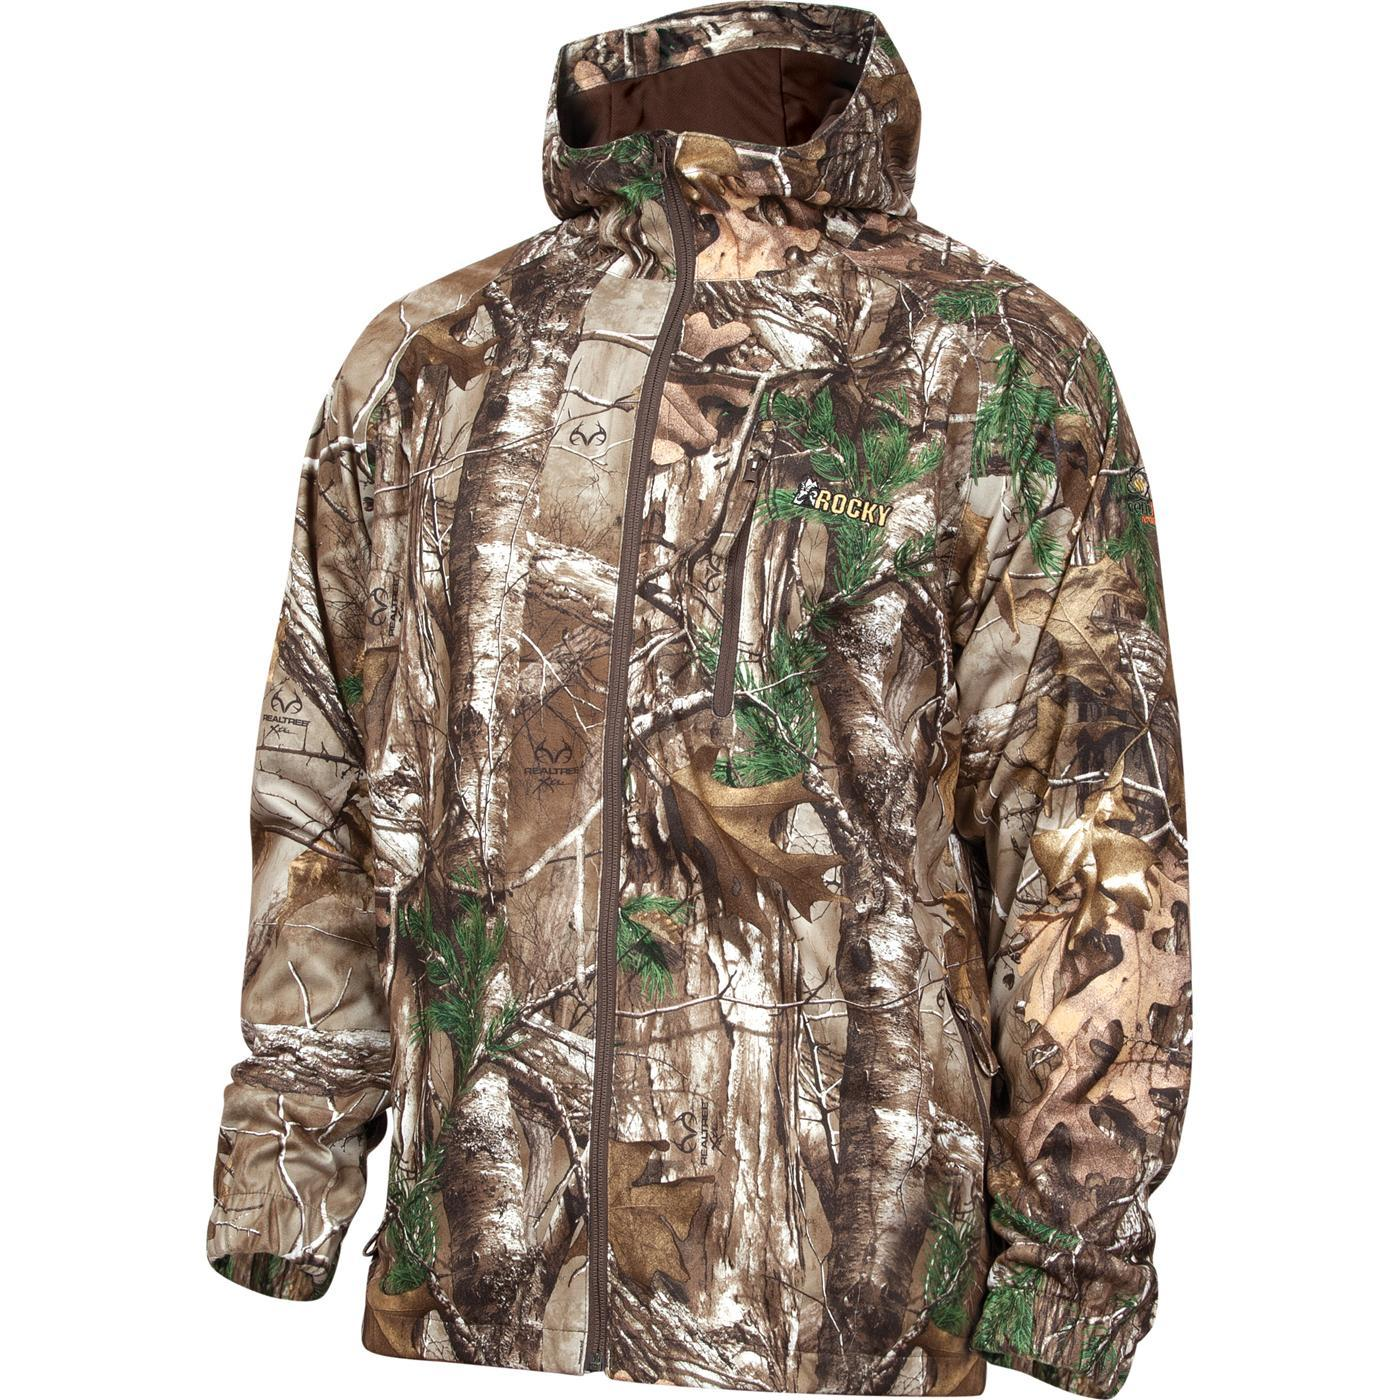 realtree camo waterproof rain jacket rocky silenthunter